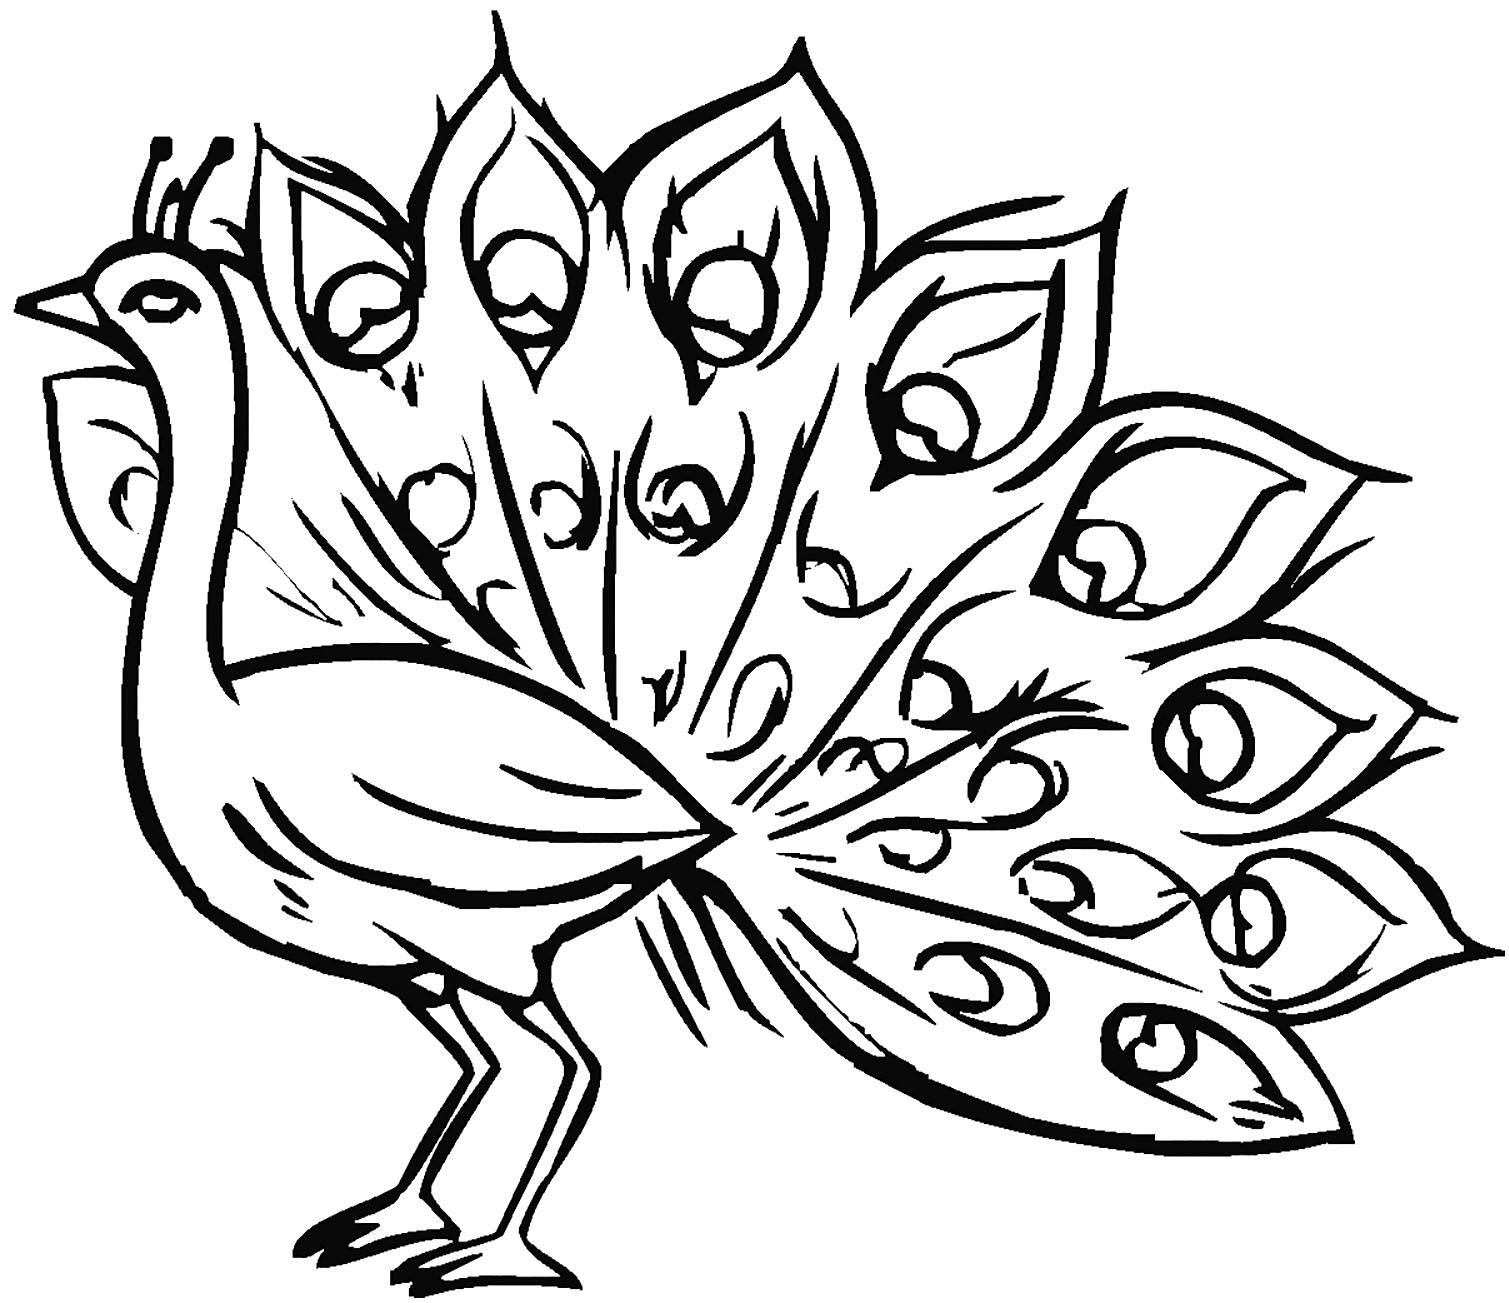 colouring pictures of peacock printable peacock coloring pages for kids cool2bkids of pictures colouring peacock